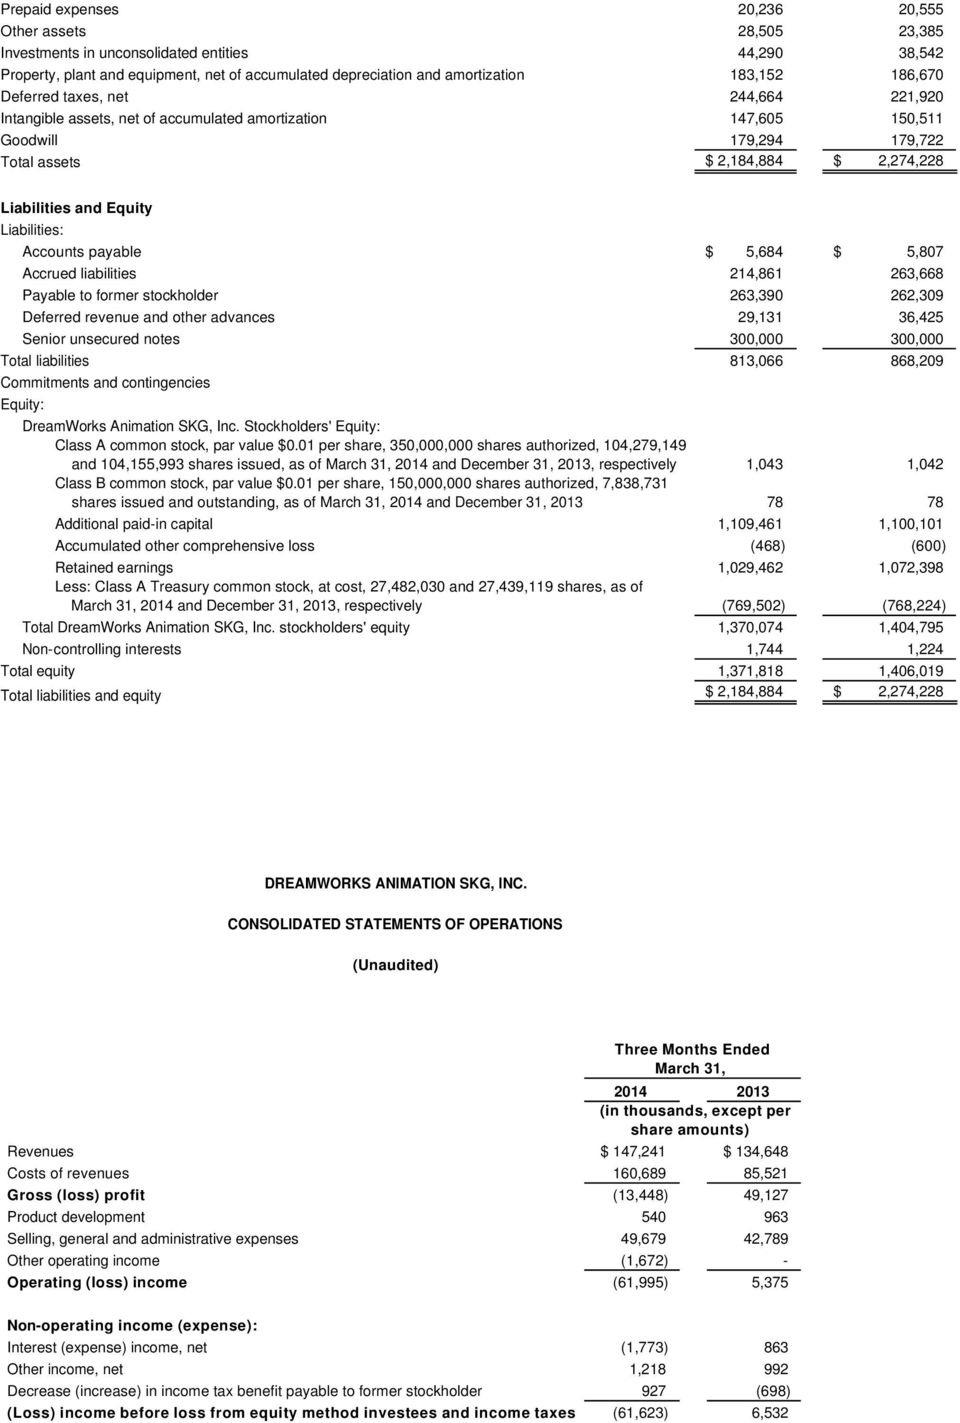 Liabilities: Accounts payable $ 5,684 $ 5,807 Accrued liabilities 214,861 263,668 Payable to former stockholder 263,390 262,309 Deferred revenue and other advances 29,131 36,425 Senior unsecured